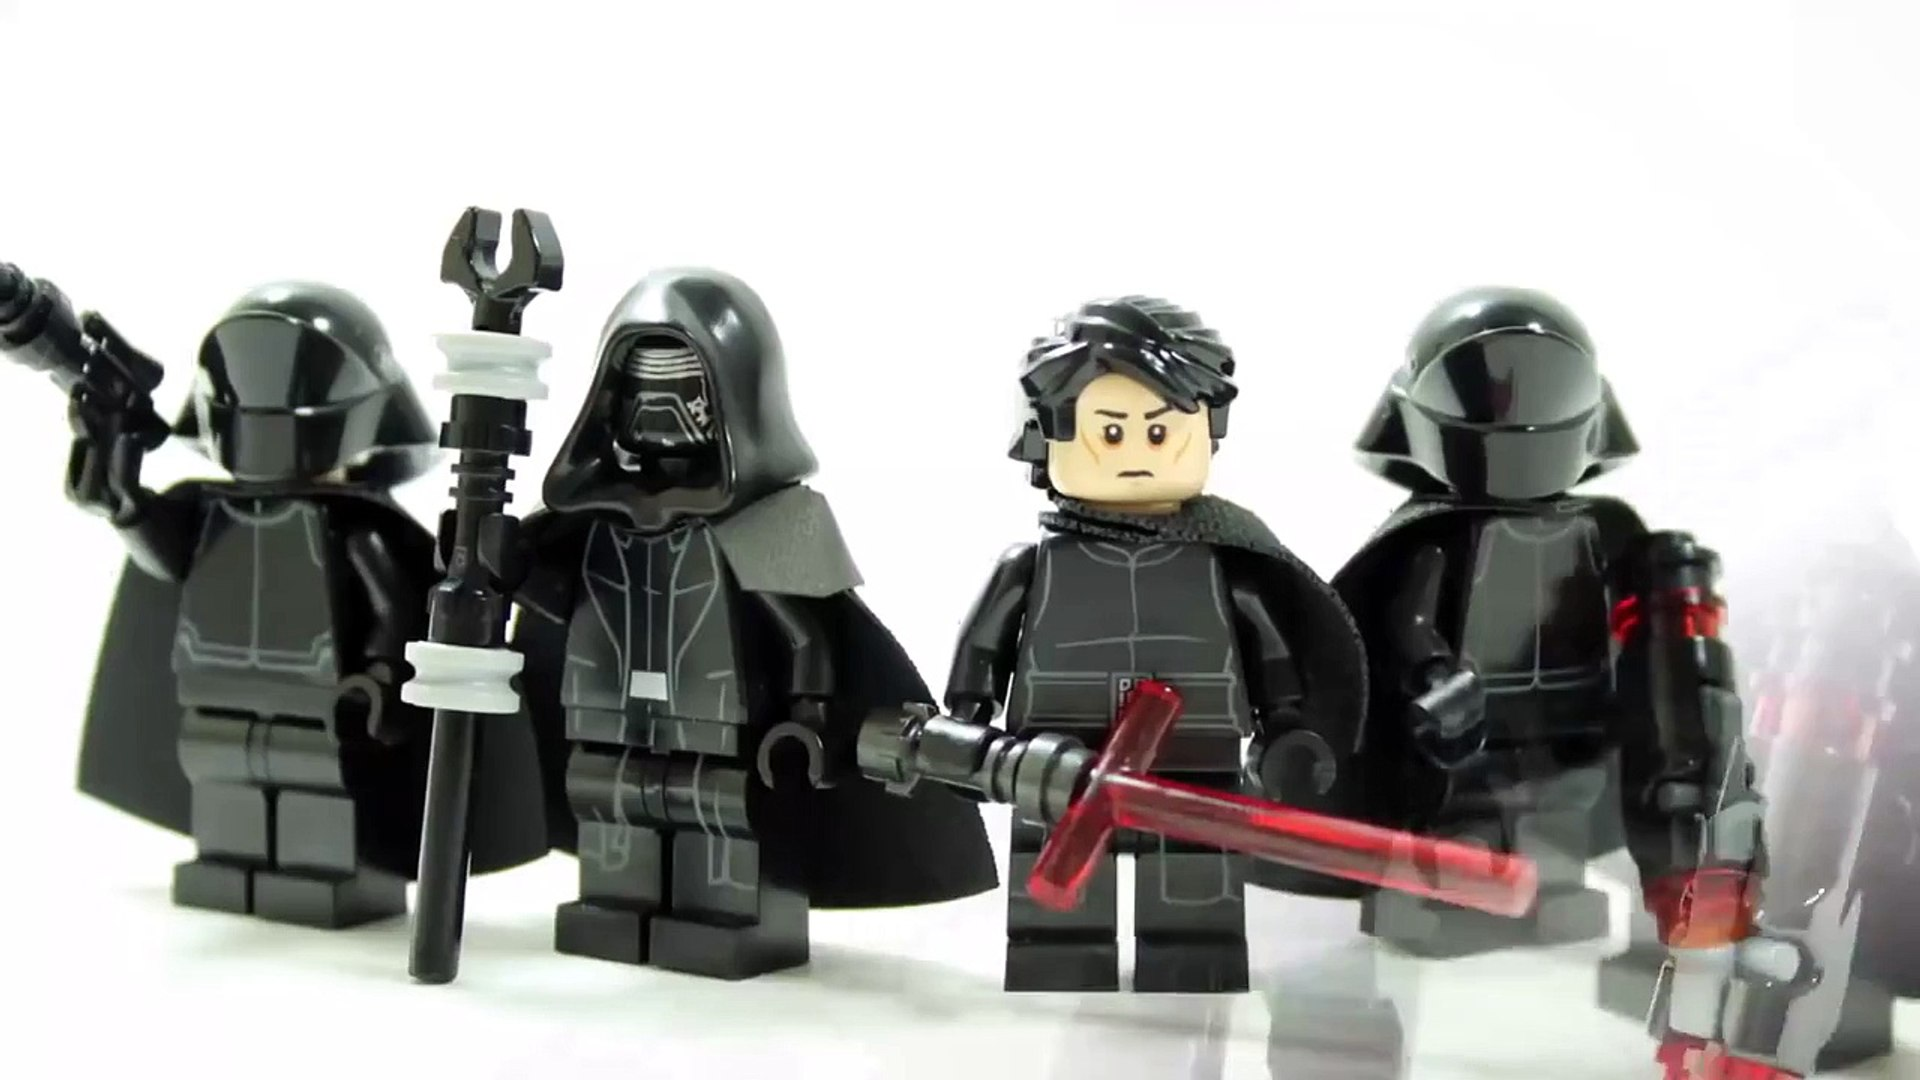 LEGO STAR WARS THE FORCE AWAKENS KNIGHTS OF REN MINIFIGURES